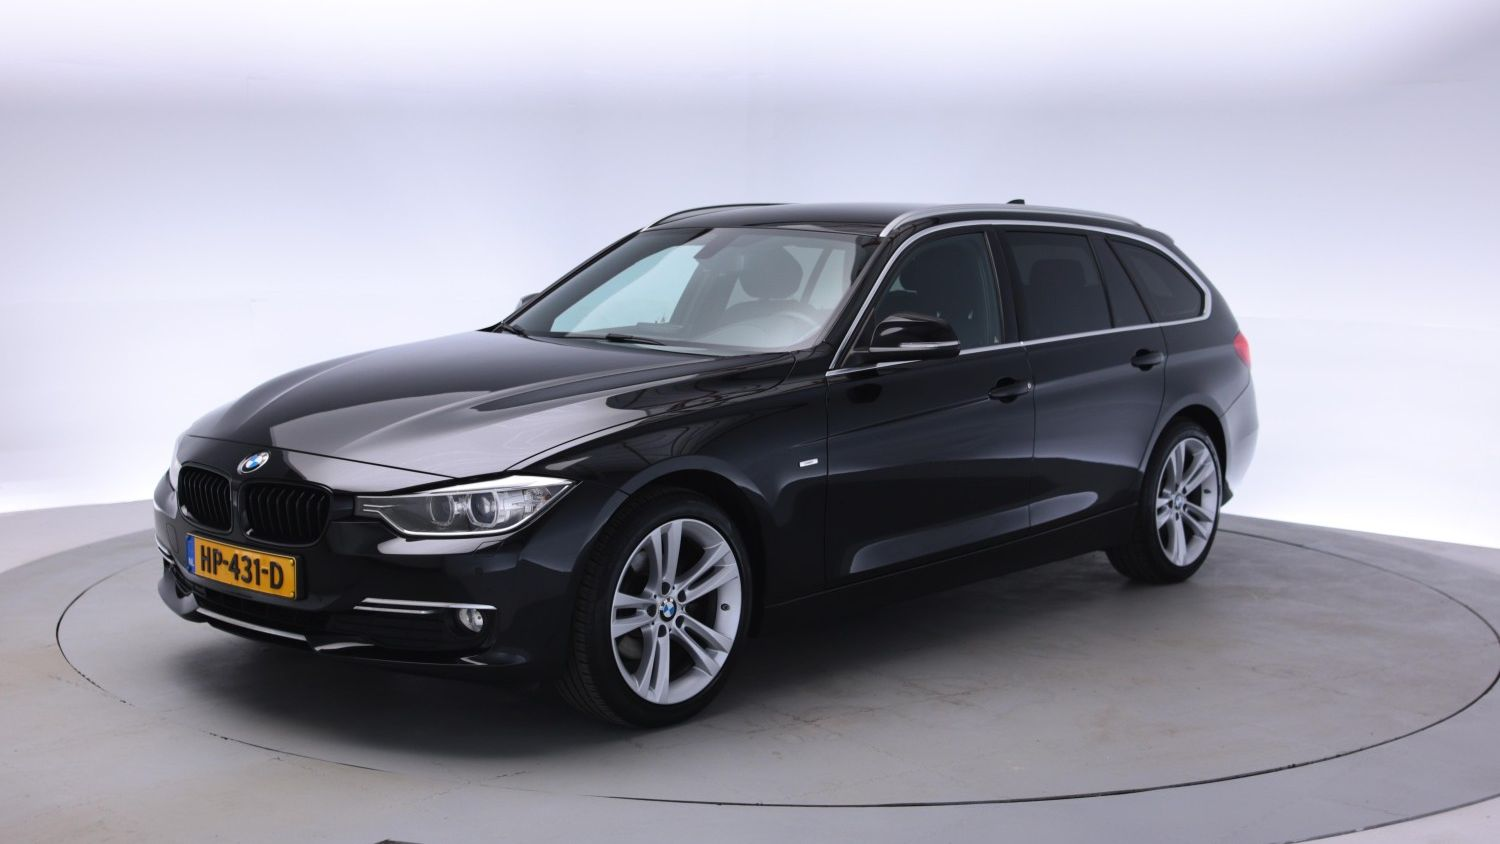 BMW 3-serie Station 2015 HP-431-D 1